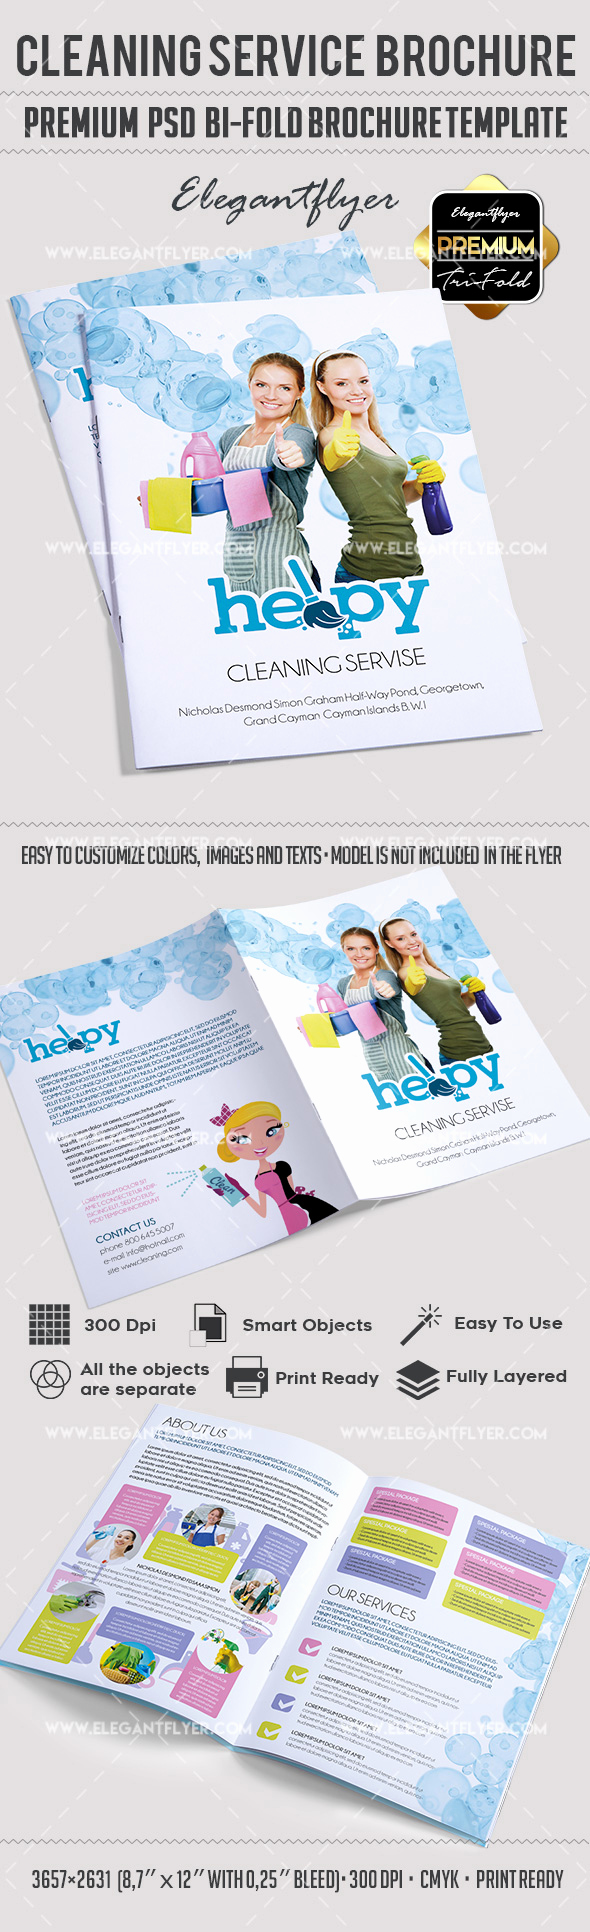 Bi Fold Brochure Template Unique Cleaning Services Bi Fold Template – by Elegantflyer